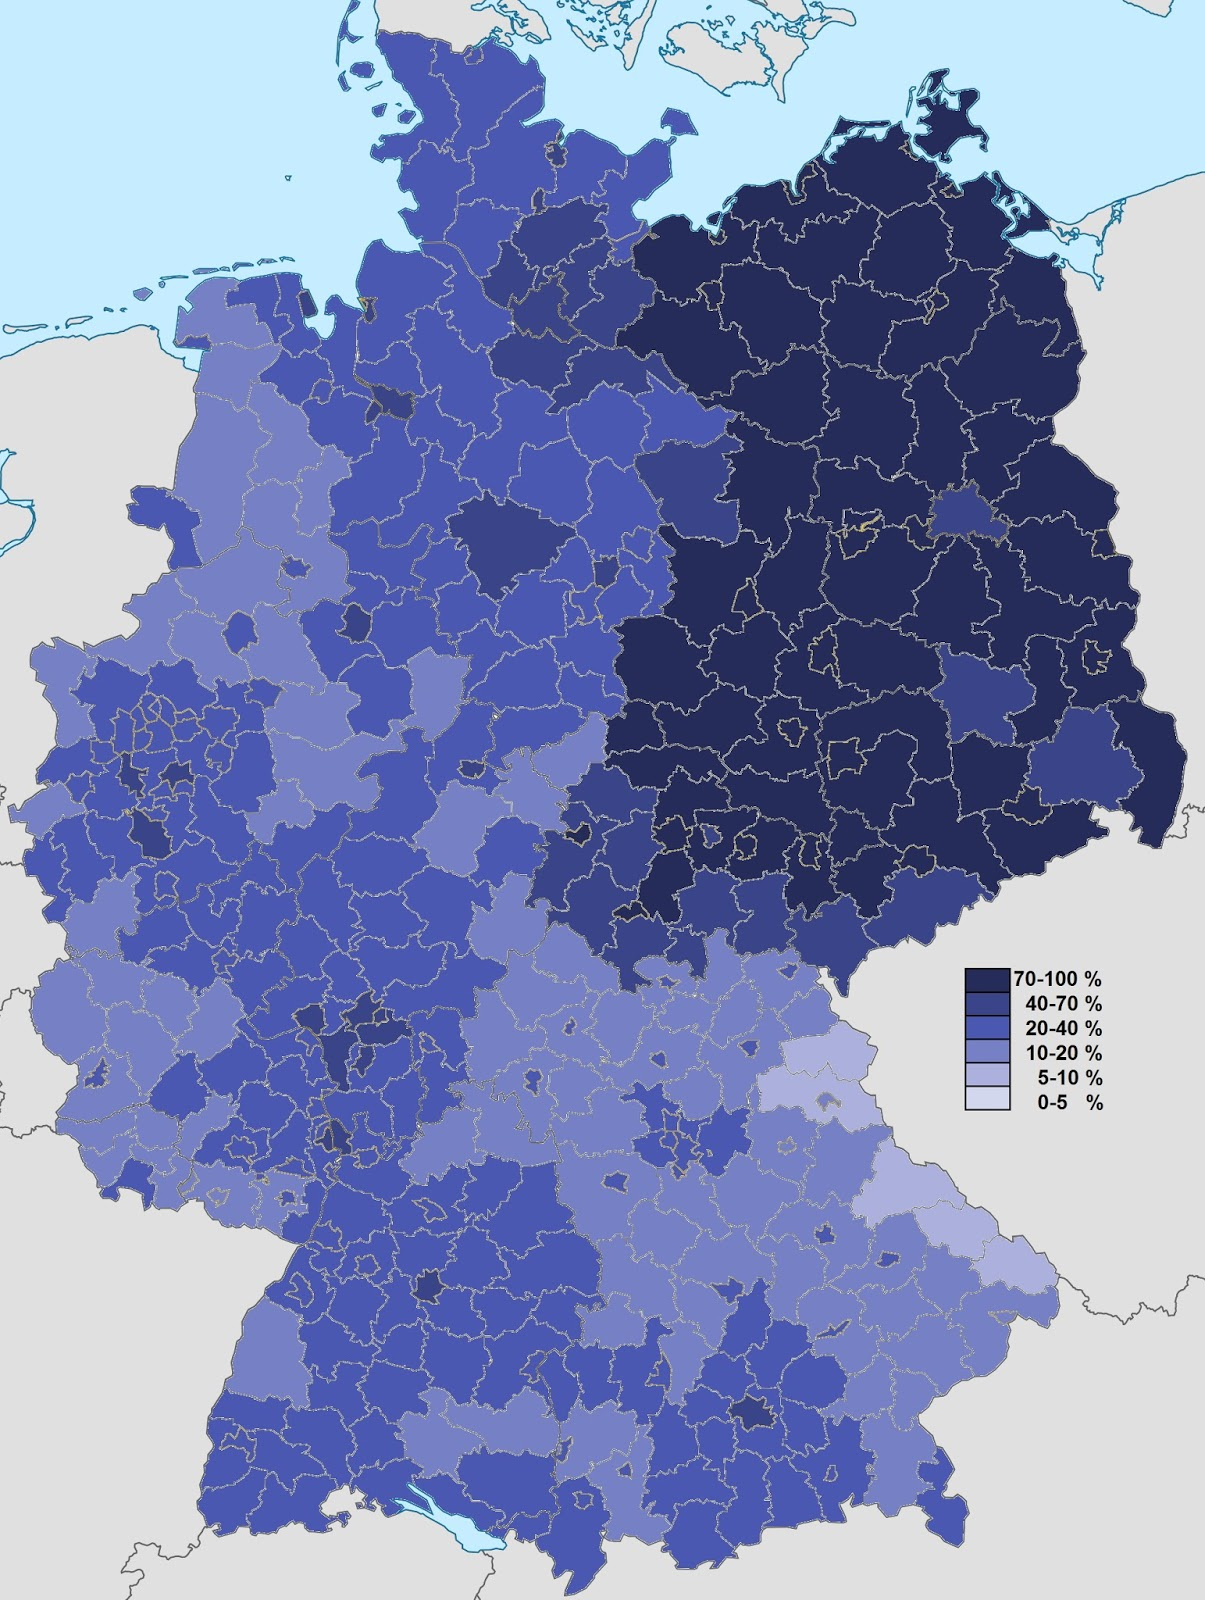 Non-religious population in Germany (according to 2011 census)